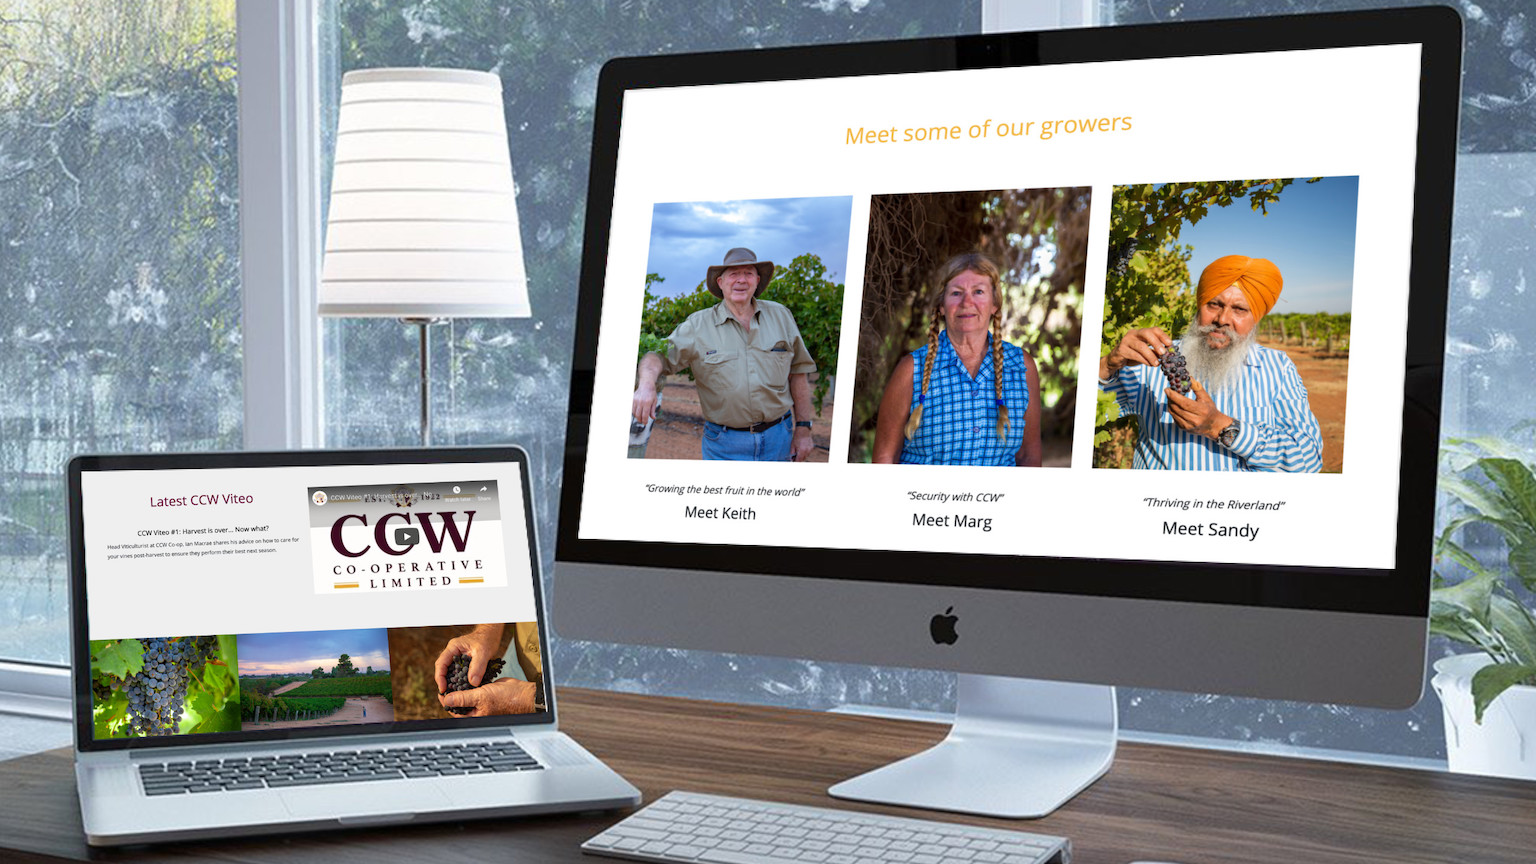 Responsive Web Design For Ccw: KarBec IT Services